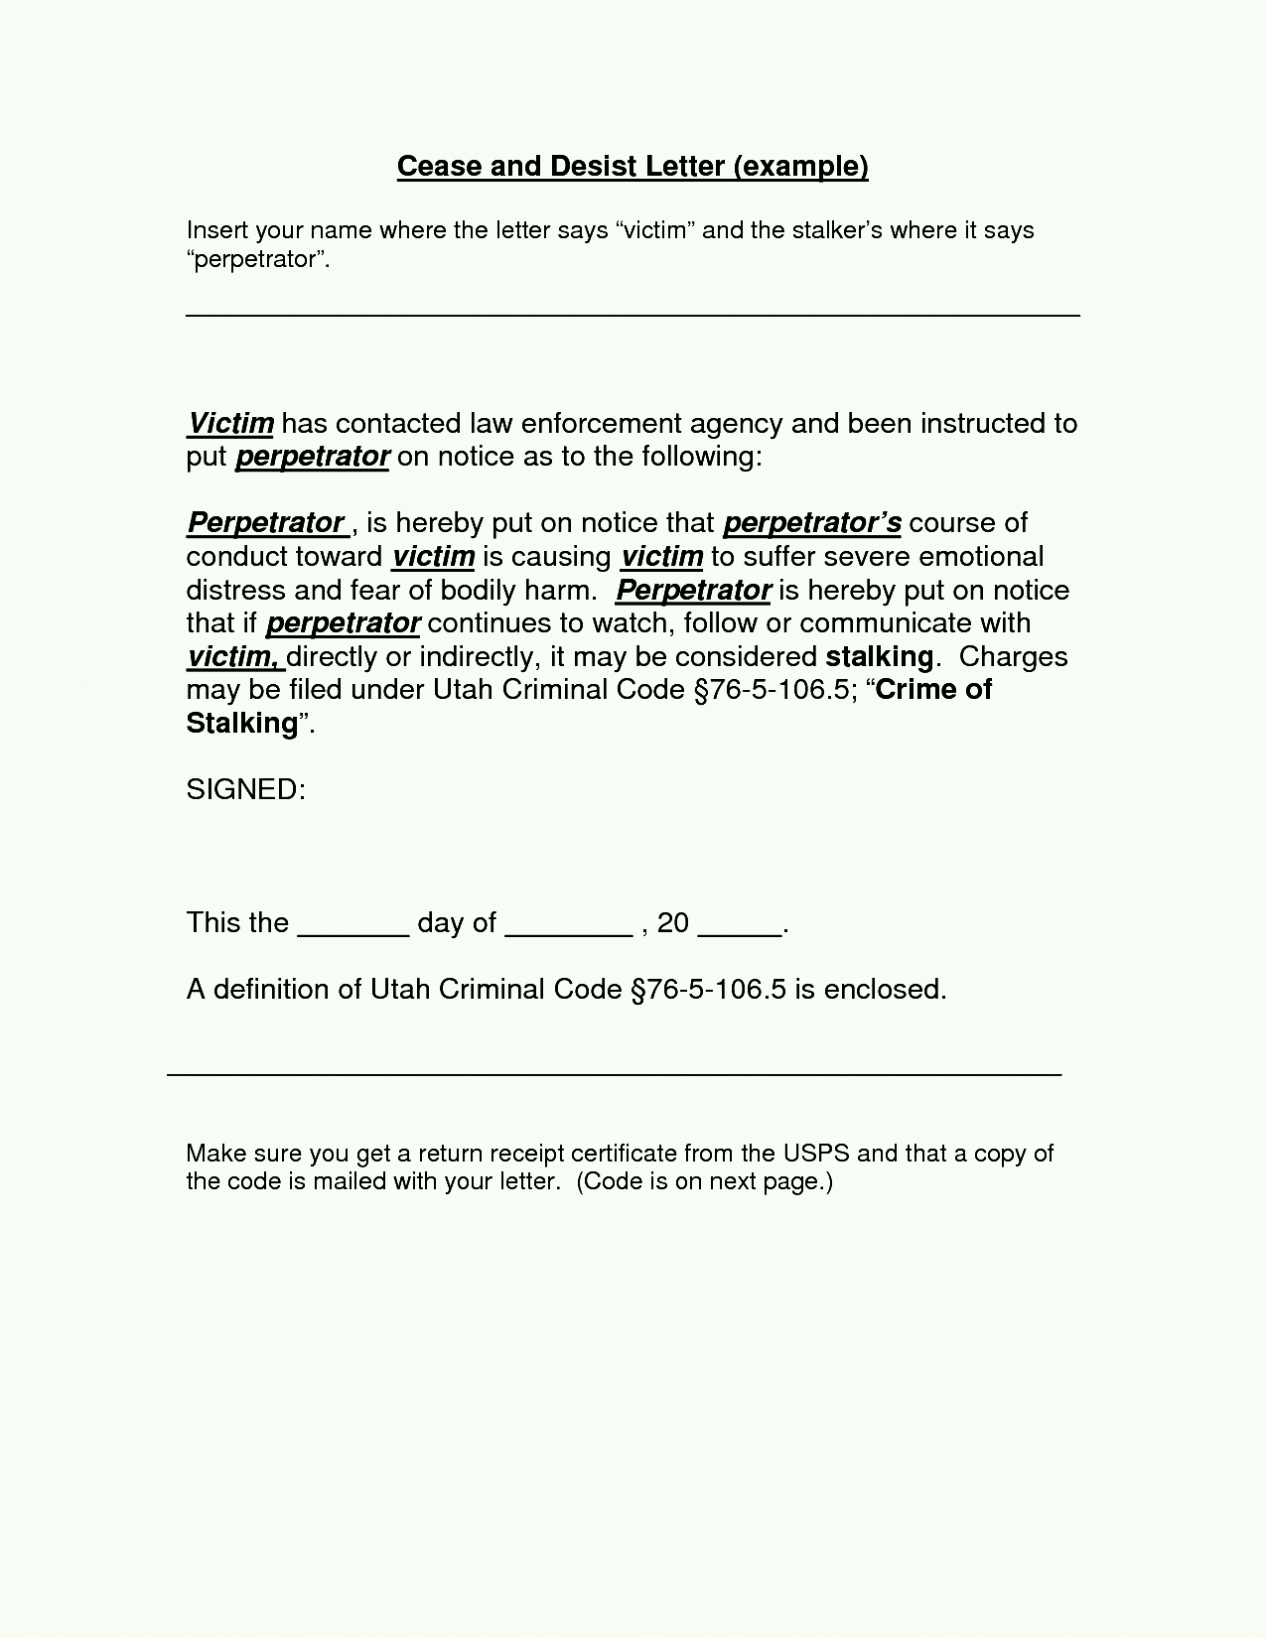 Cease and Desist Letter order Template